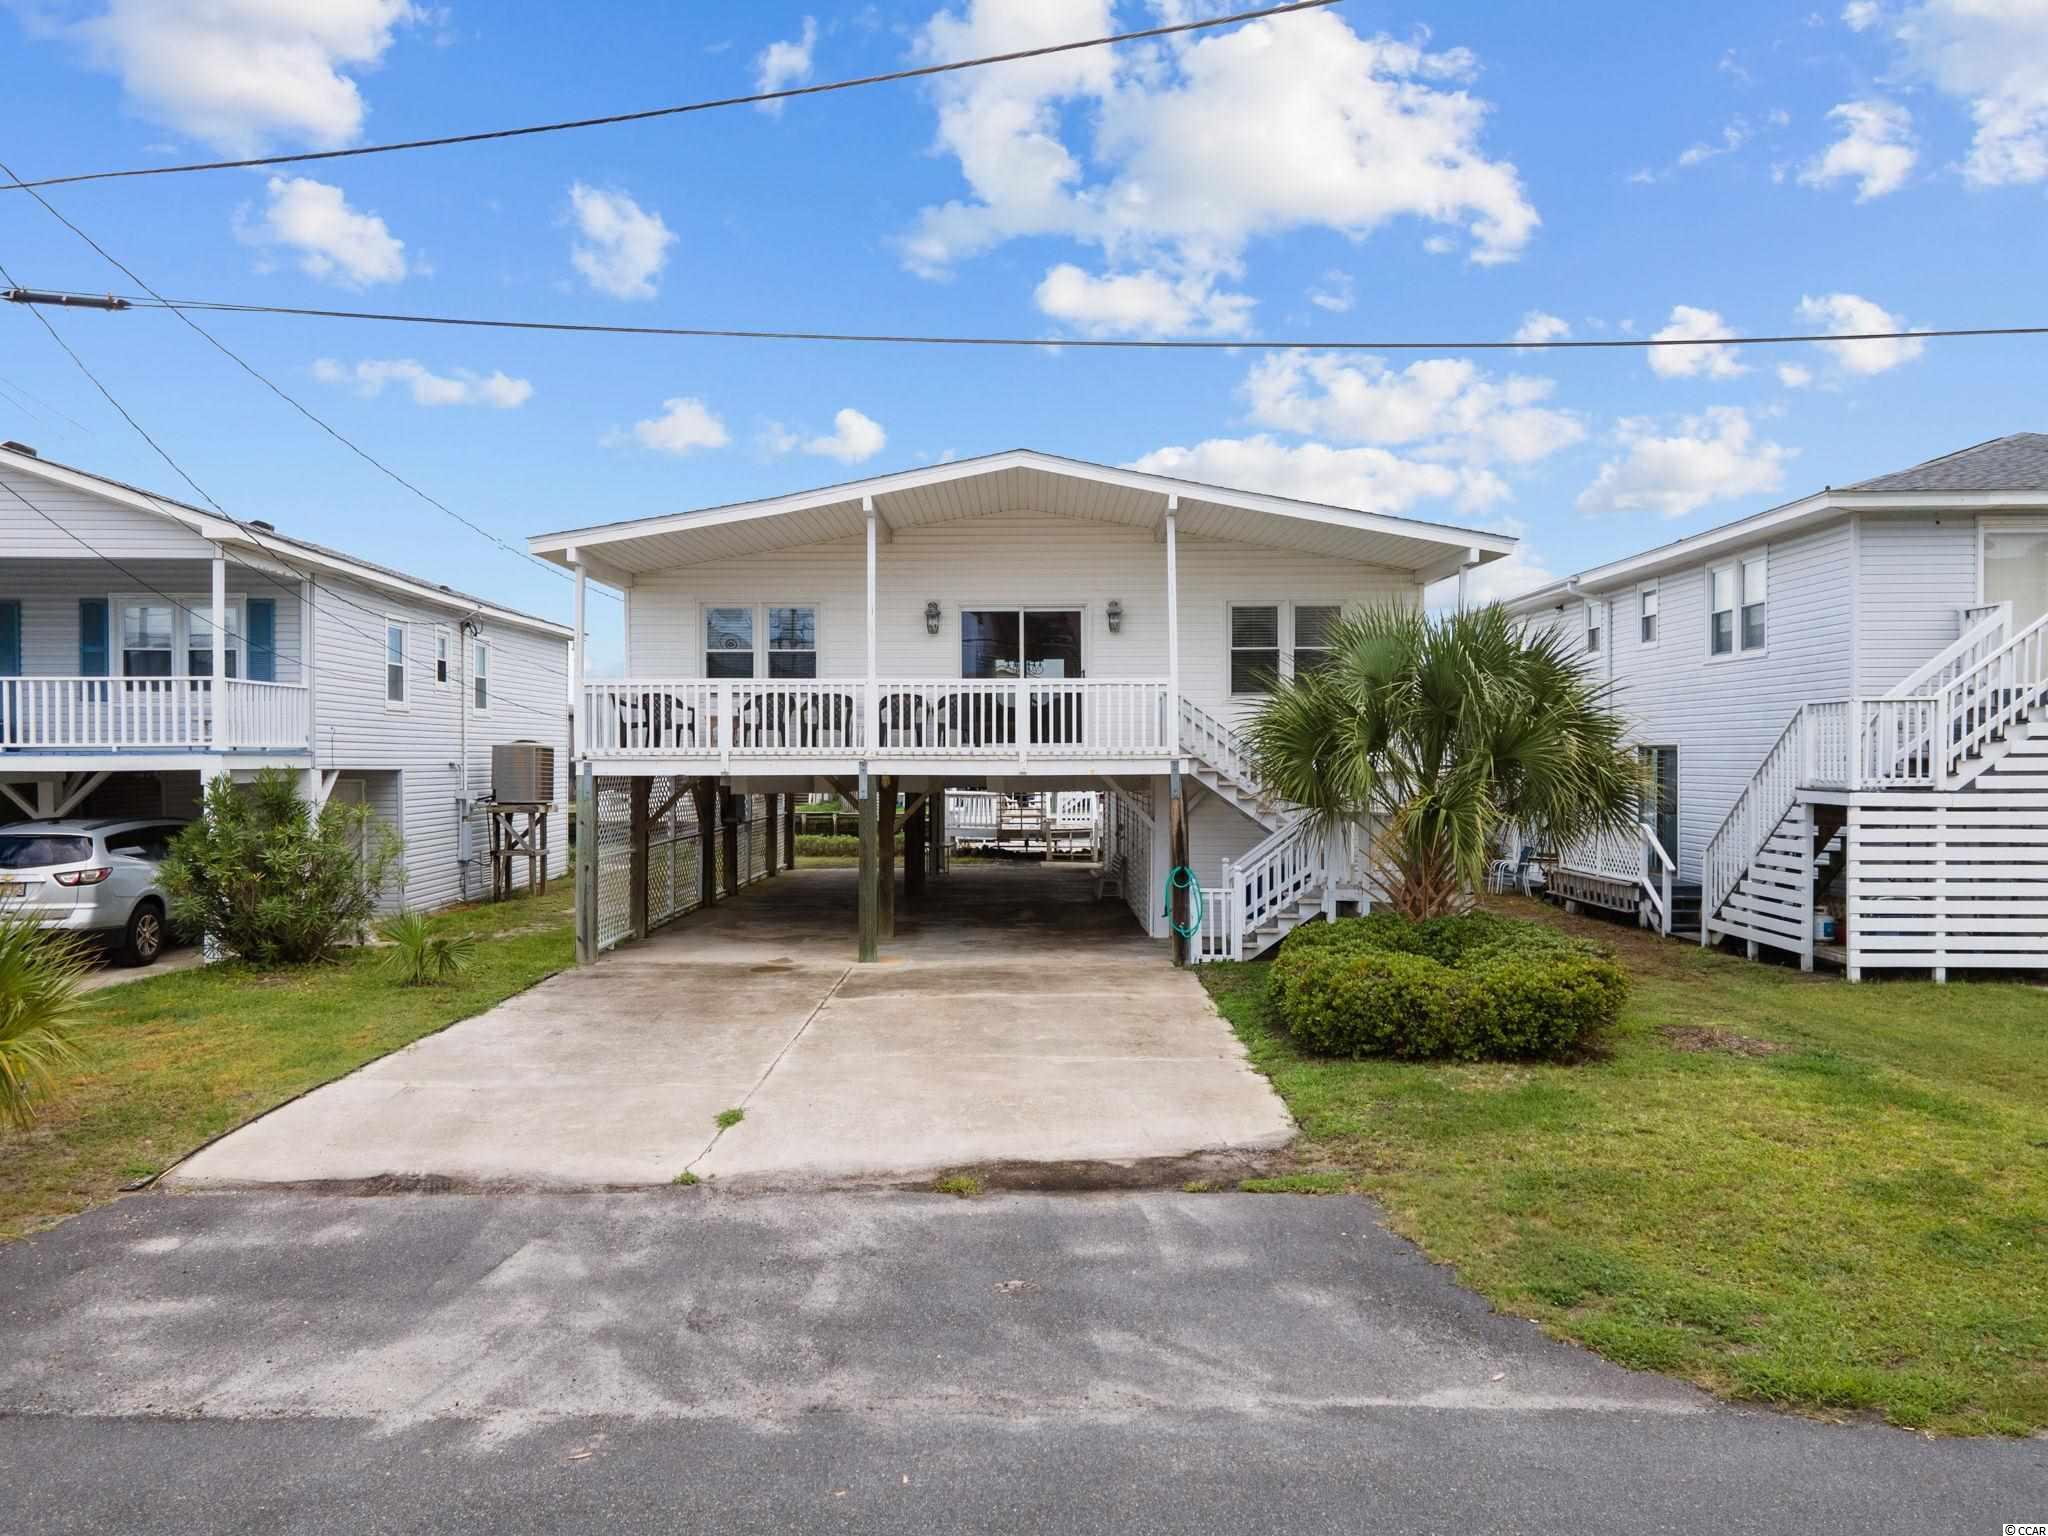 Presenting this vibrant 4 bedroom 2 bath raised beach canal home located in the Cherry Grove section of North Myrtle Beach. This fully furnished bright and cheerful home offers a new roof that was installed in 2021, a new deck installed on 08/18/21, a new HVAC system installed on 08/04/21, new water heater installed on 6/20/20, elegant hardwood & carpet flooring, vaulted ceiling with fan, spacious main living/dining combo floor plan, and a delightful balcony area with breath taking canal views. The fully equipped kitchen includes white on white appliances, smooth flat top range, refrigerator, dishwasher, along with ample cabinet & counters space. Each of the comfortable bedrooms are connected with a with a timeless full Jack & Jill bath. This piece of paradise includes relaxing open air back decks, under house sizable storage areas, and offers an inviting front deck for watching the memorable sunsets. This home affords you easy access to the beach and golfing along with all of the other activities and happenings in North Myrtle Beach & Myrtle Beach including fun eateries, award winning off-Broadway shows, public fishing piers, and intriguing shopping adventures along the GrandStrand. Conveniently located to your everyday needs, including grocery stores, banks, post offices, medical centers, doctors' offices, and pharmacies. Check out our state of the art 3-D Virtual Tour.